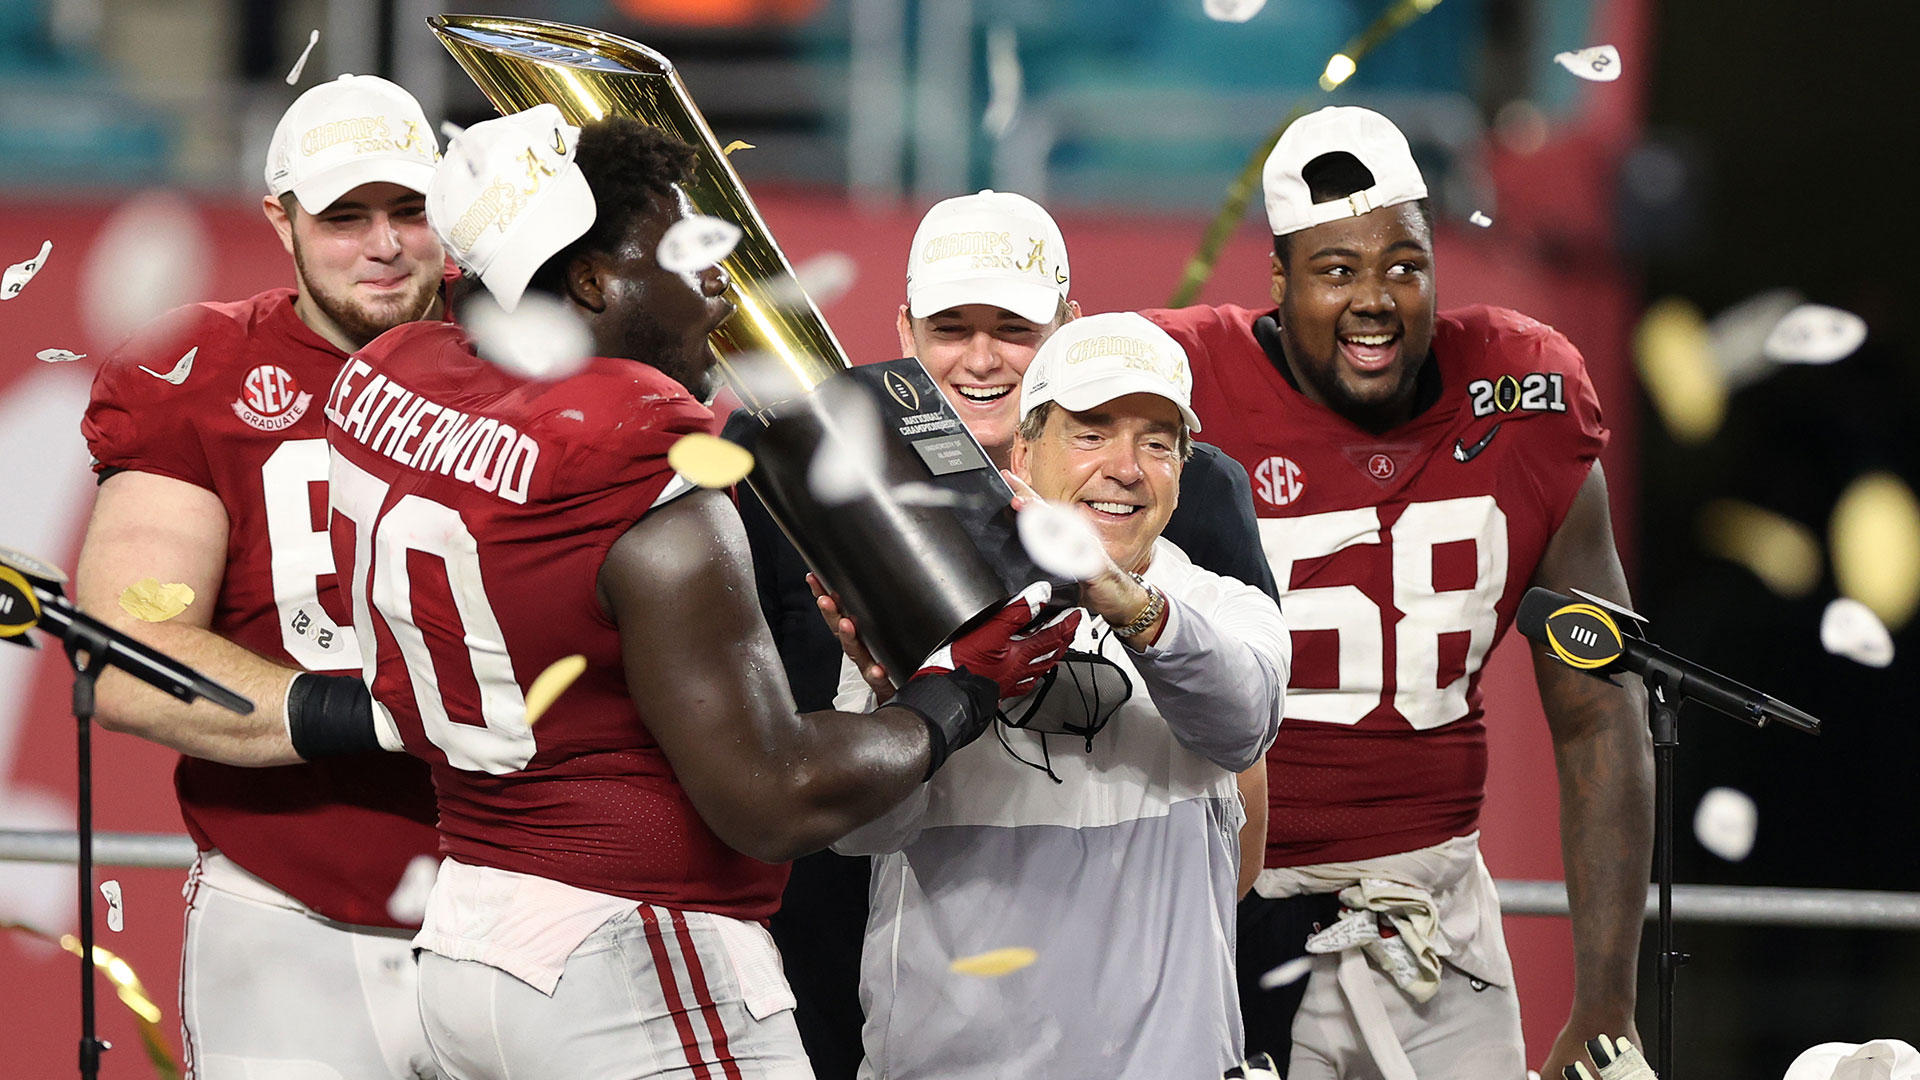 Nick Saban hoists 2021 National Championship trophy